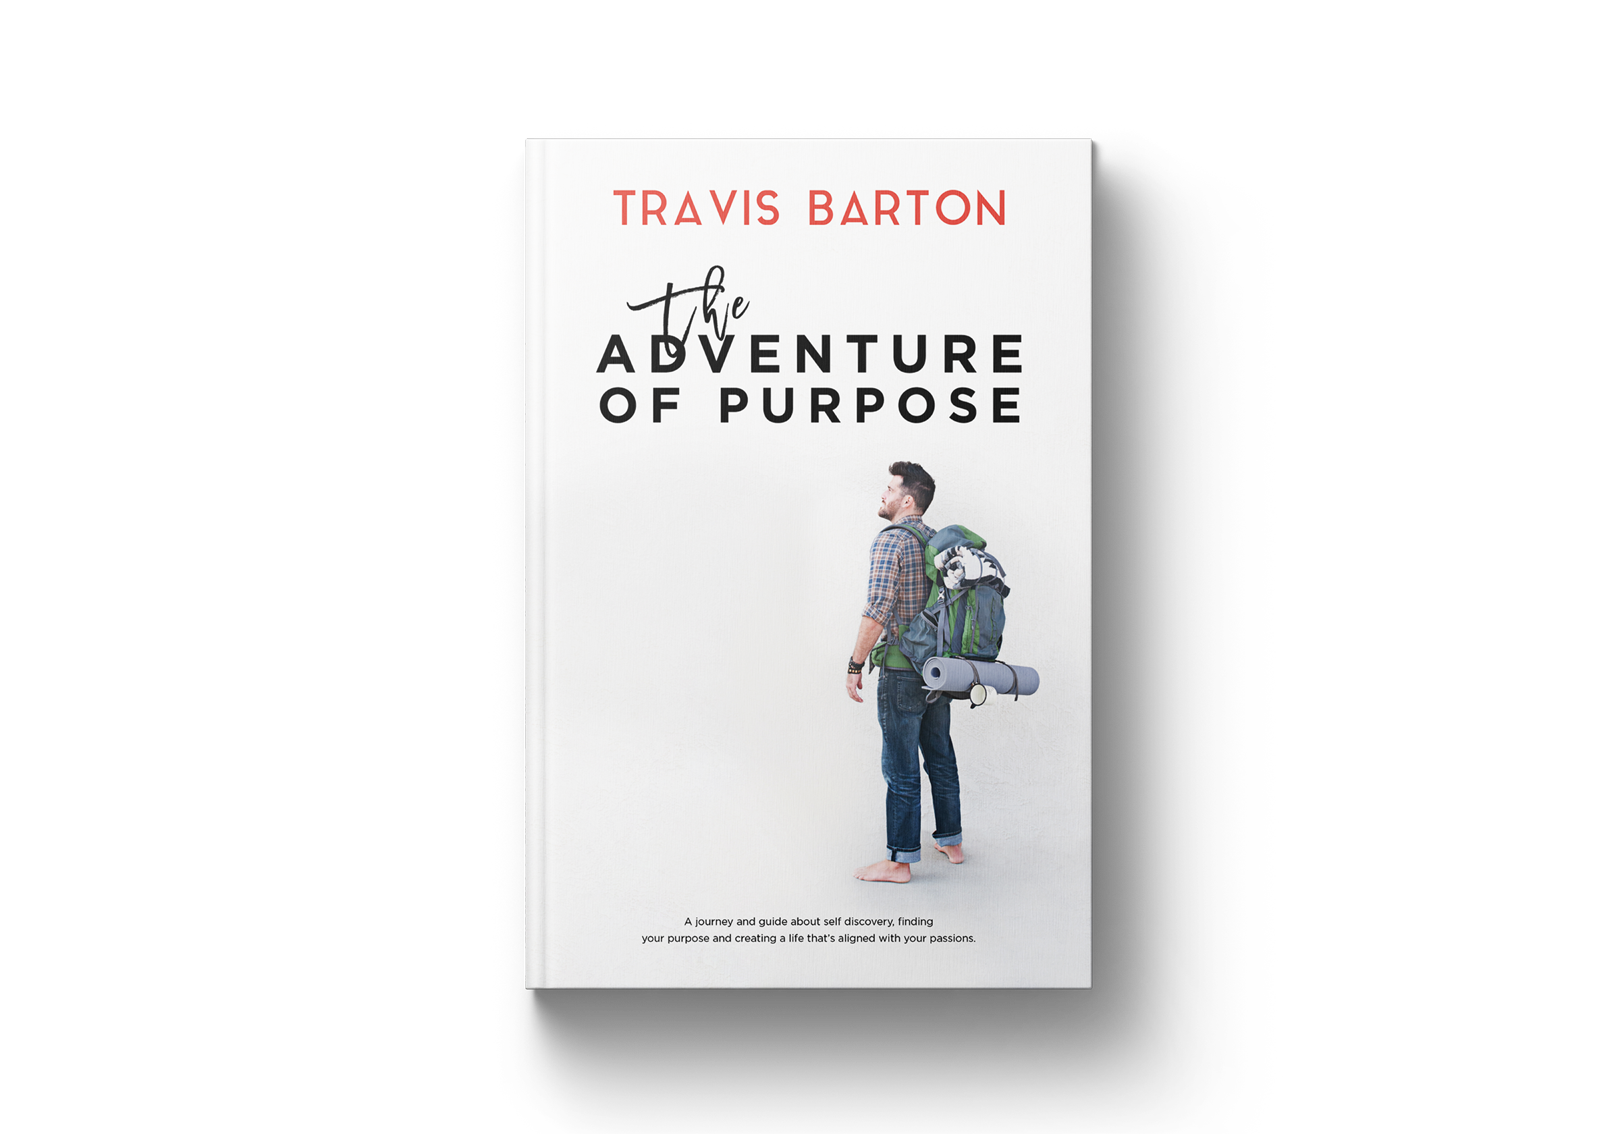 life-business-coach-book-travis-barton